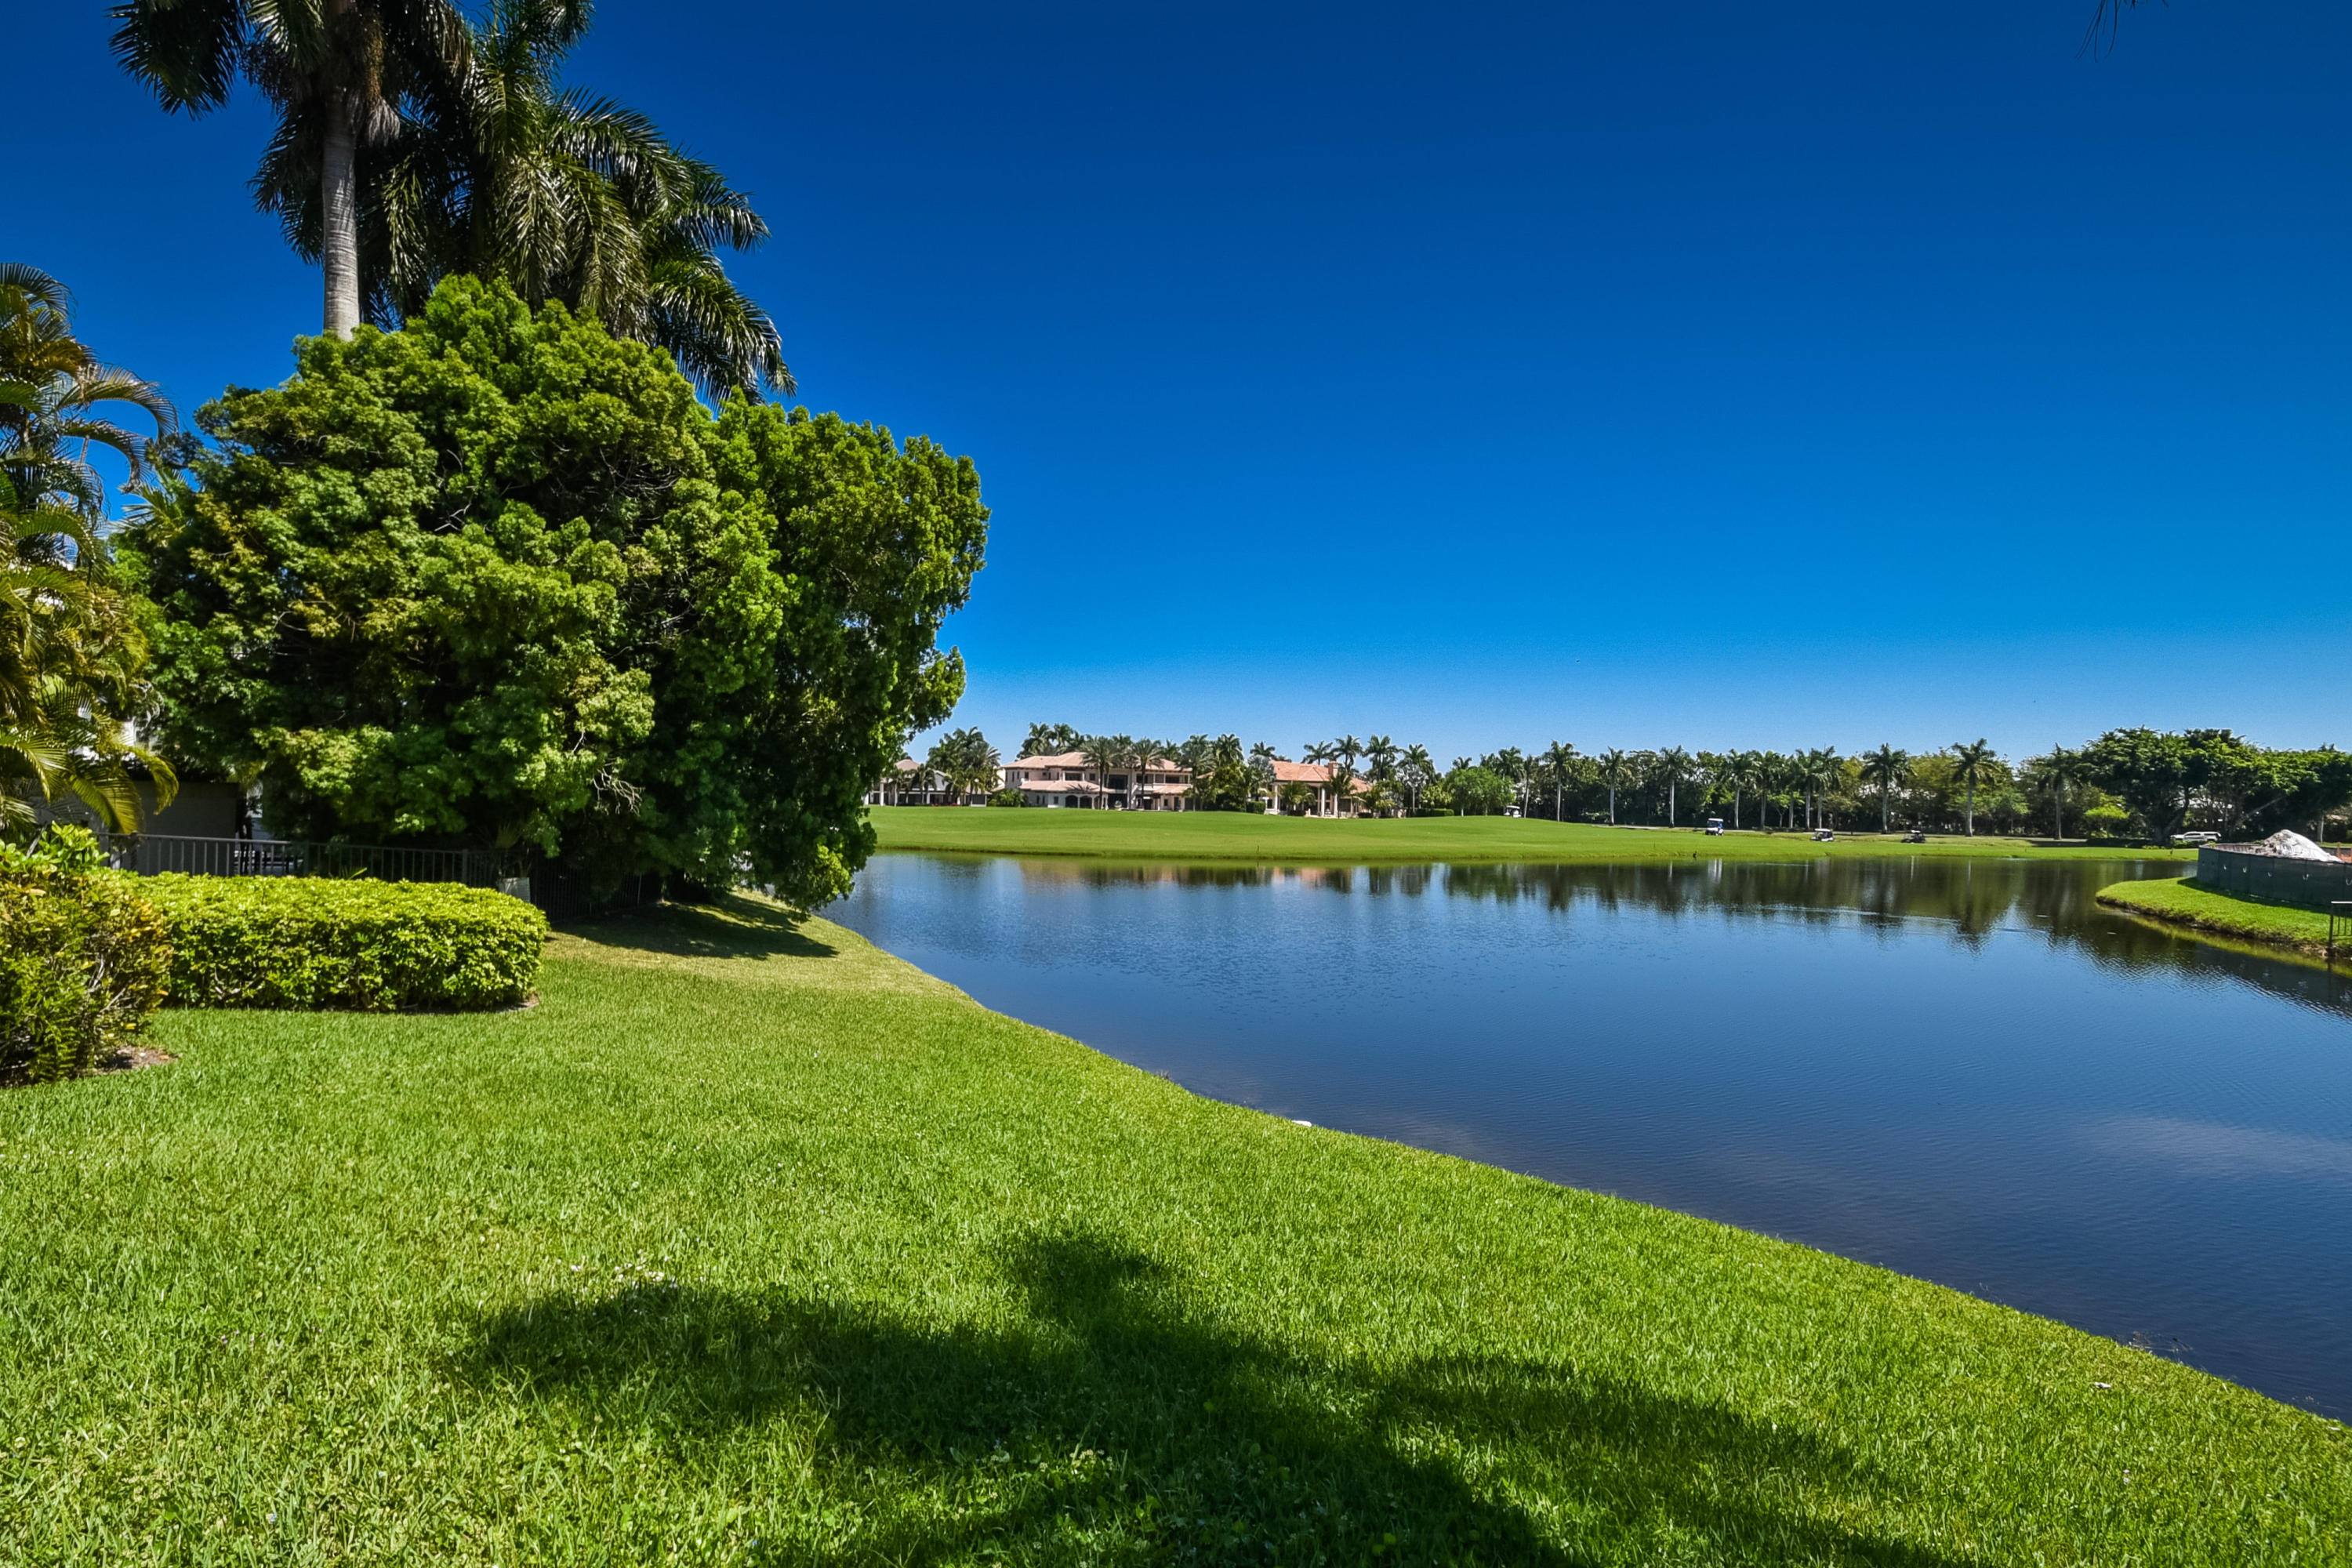 17249 Northway Circle, Boca Raton, Florida 33496, ,Land,For Sale,ST ANDREWS COUNTRY CLUB,Northway,RX-10532242